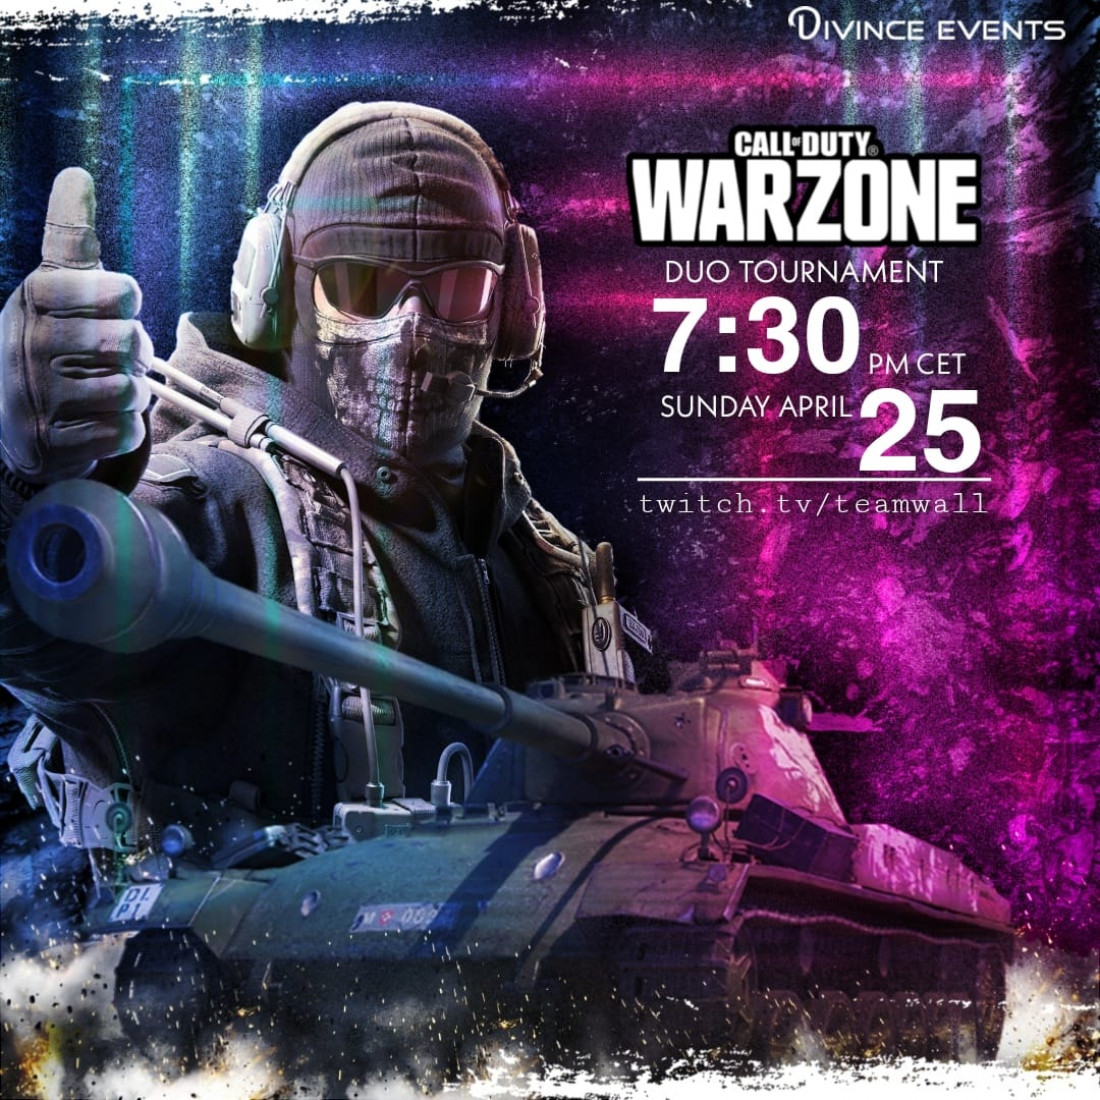 Call of Duty: Warzone private match DUO tournament